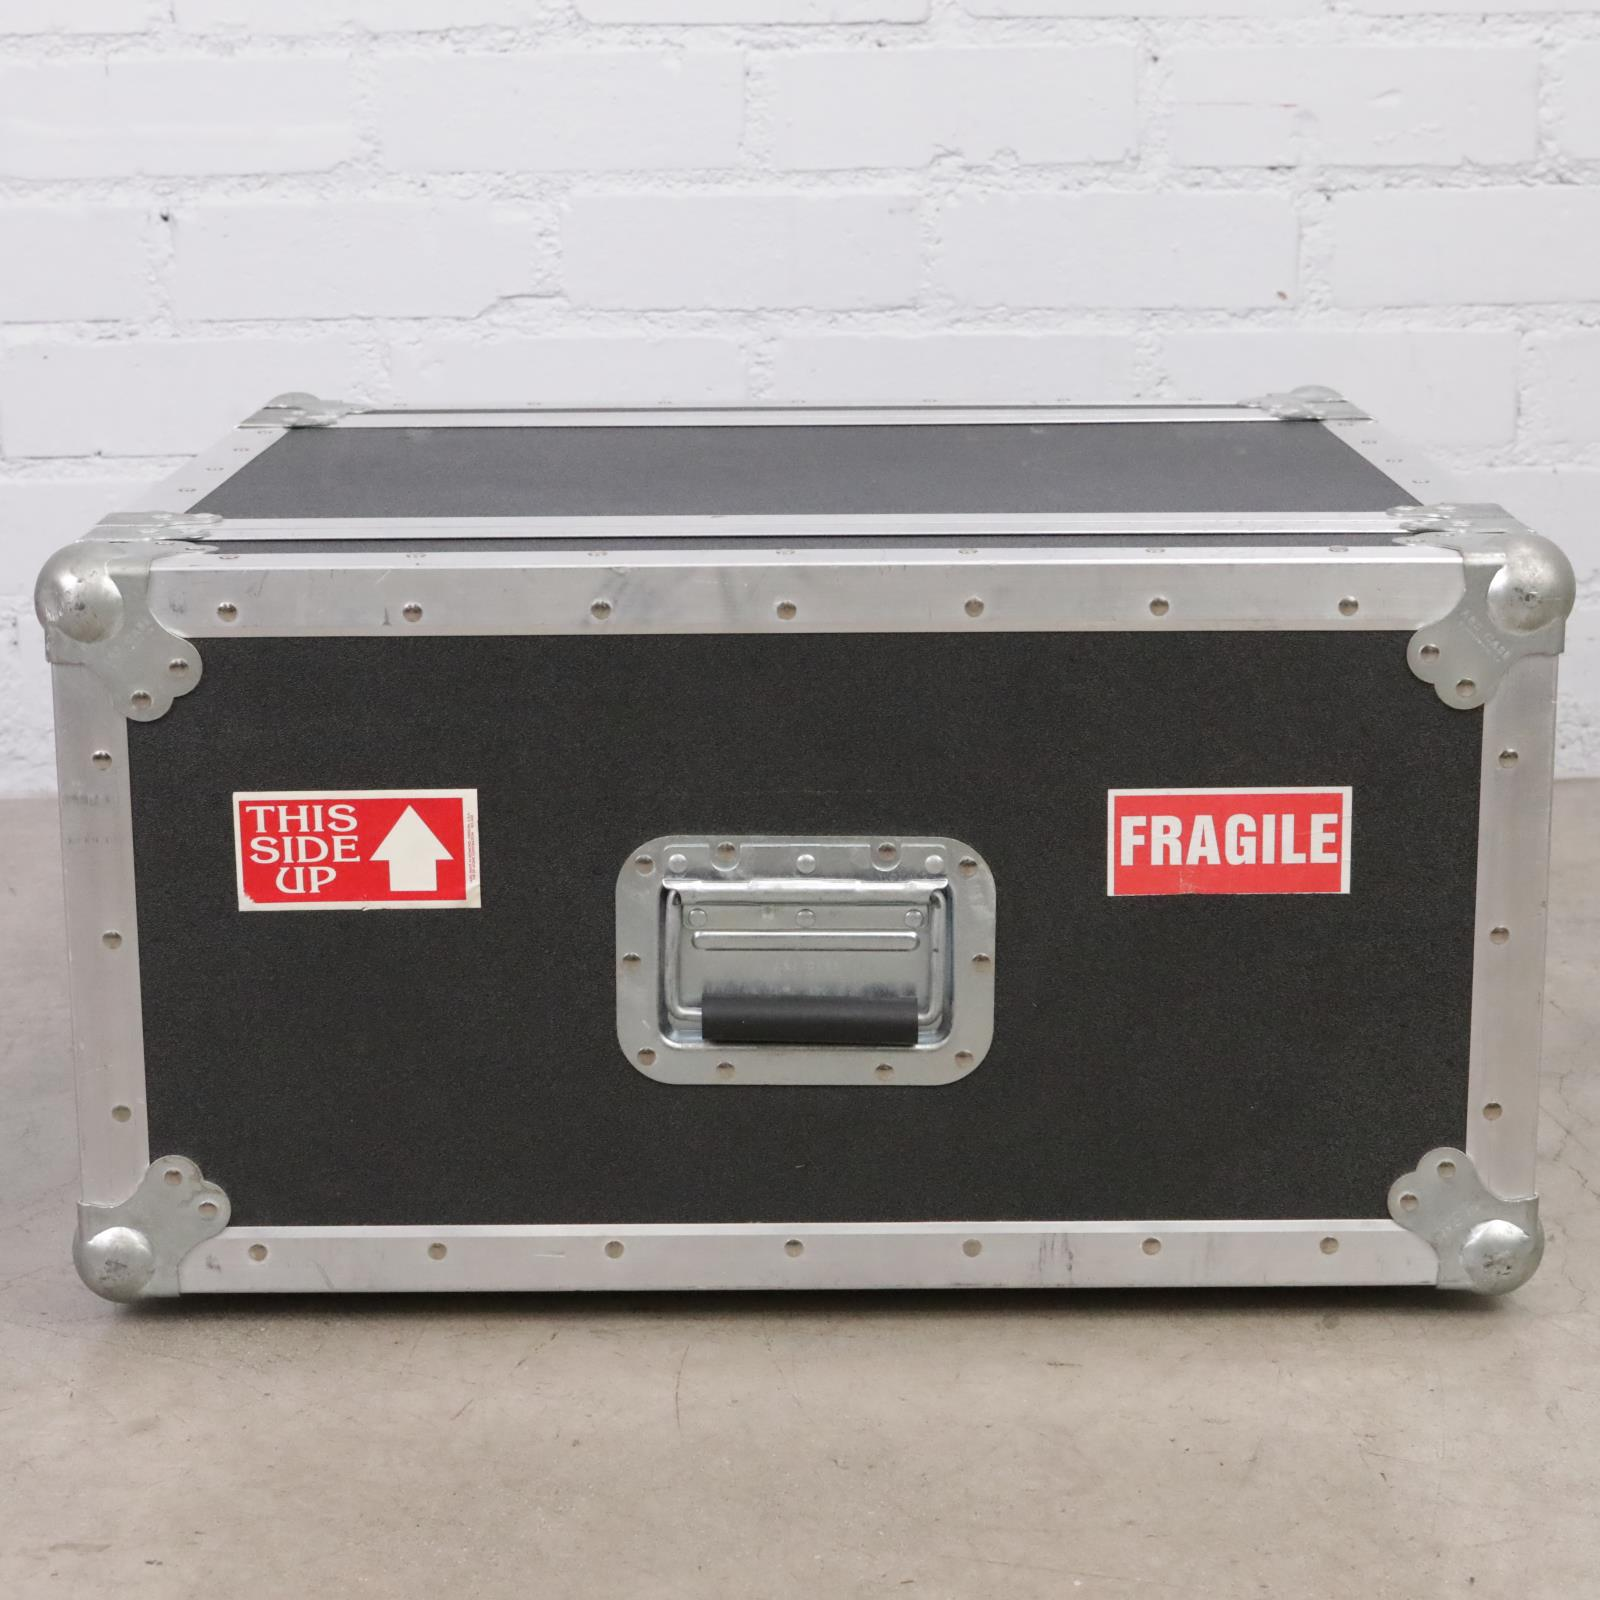 A&S 4-Space 4U ATA Flight Road Shock Mount Case Owned By David Roback #44513